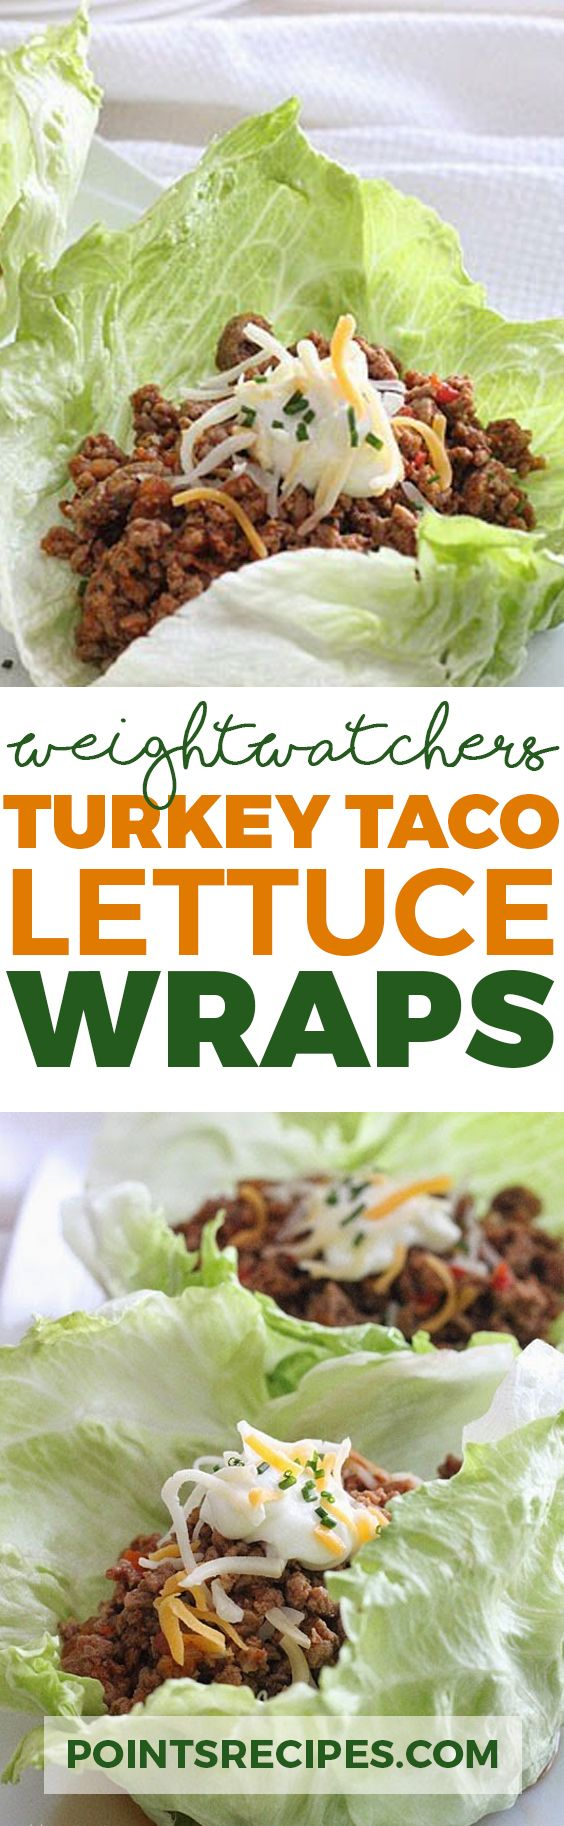 Turkey Taco Lettuce Wraps (Weight Watchers SmartPoints)